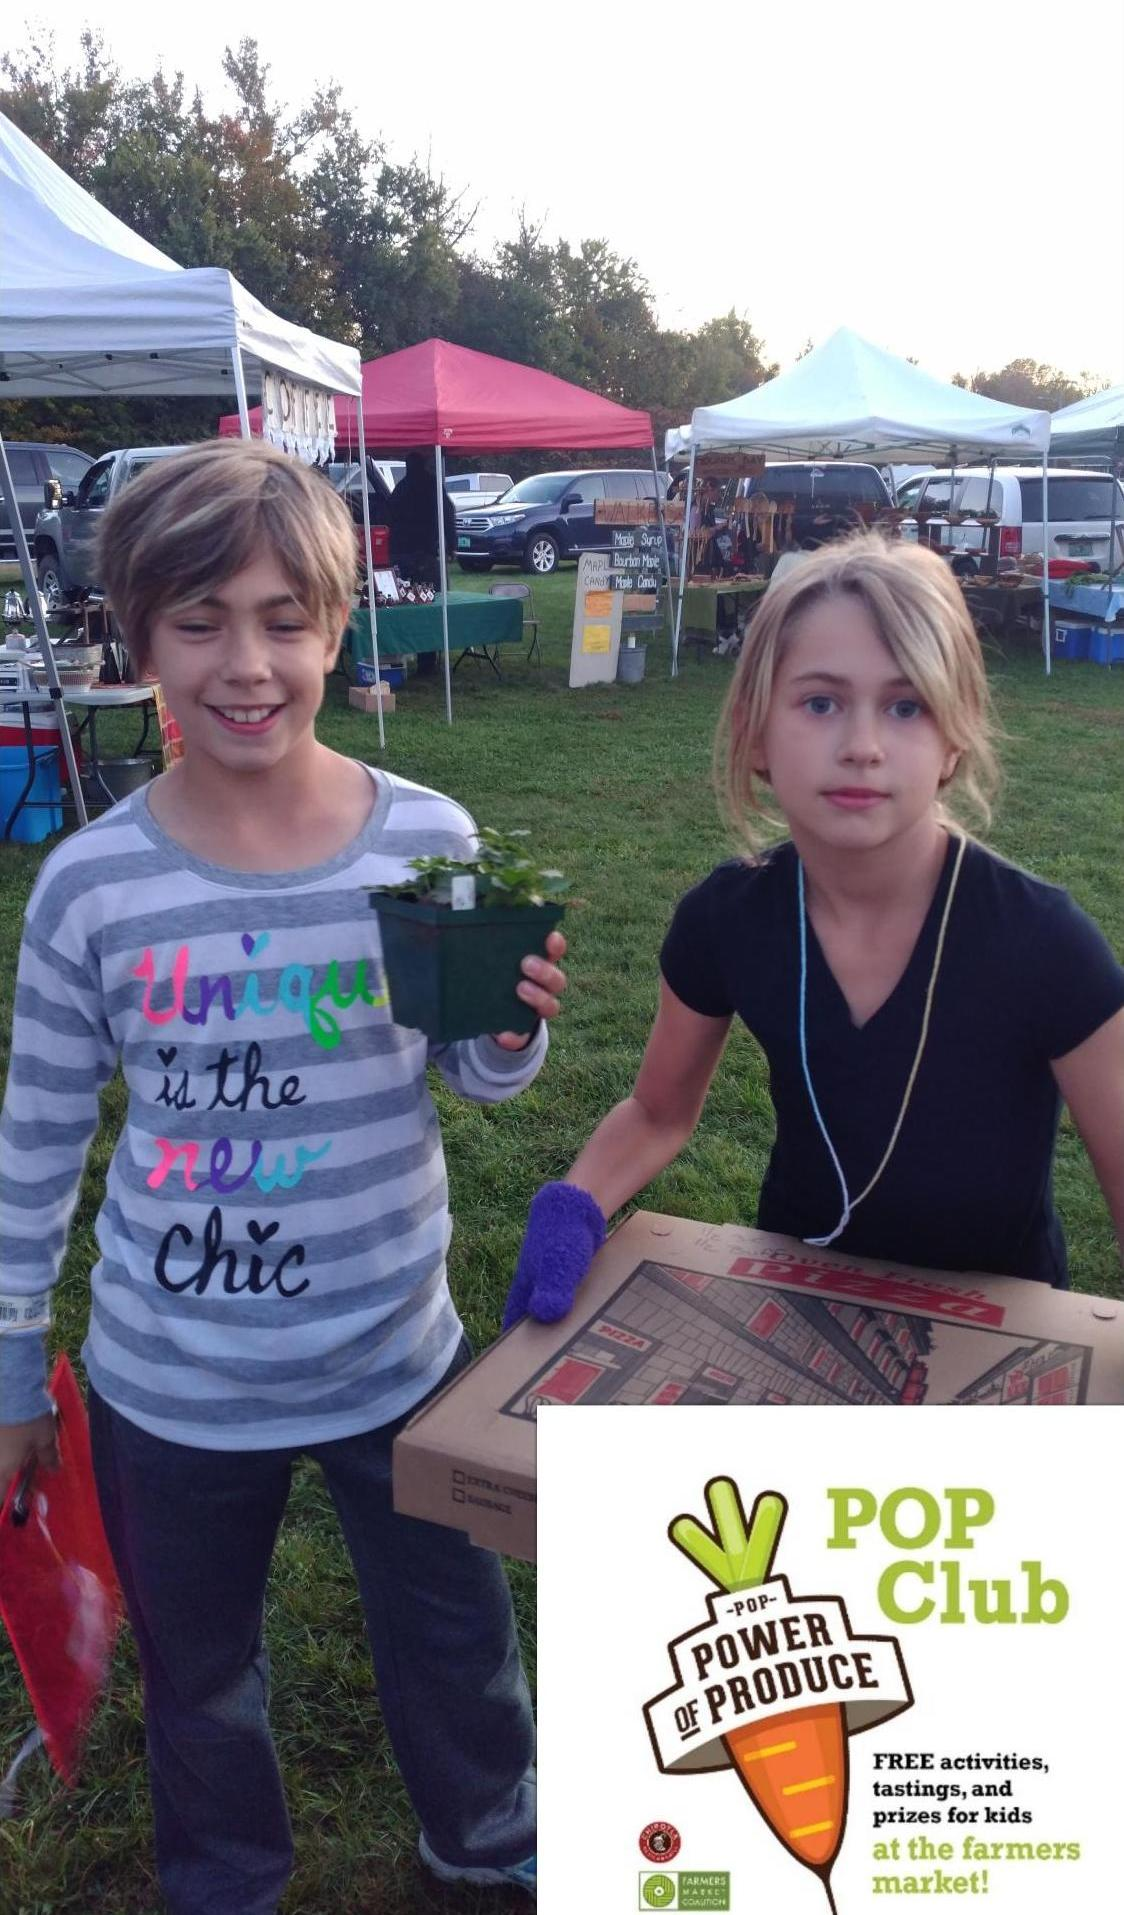 POP Club - POP Club is a fun childrens program which focuses on nutrition education and empowering kids 6-12 to make healthy food choices.  Kids who participate recieve $3 per week to spend on fresh fruits & veggies at the market!